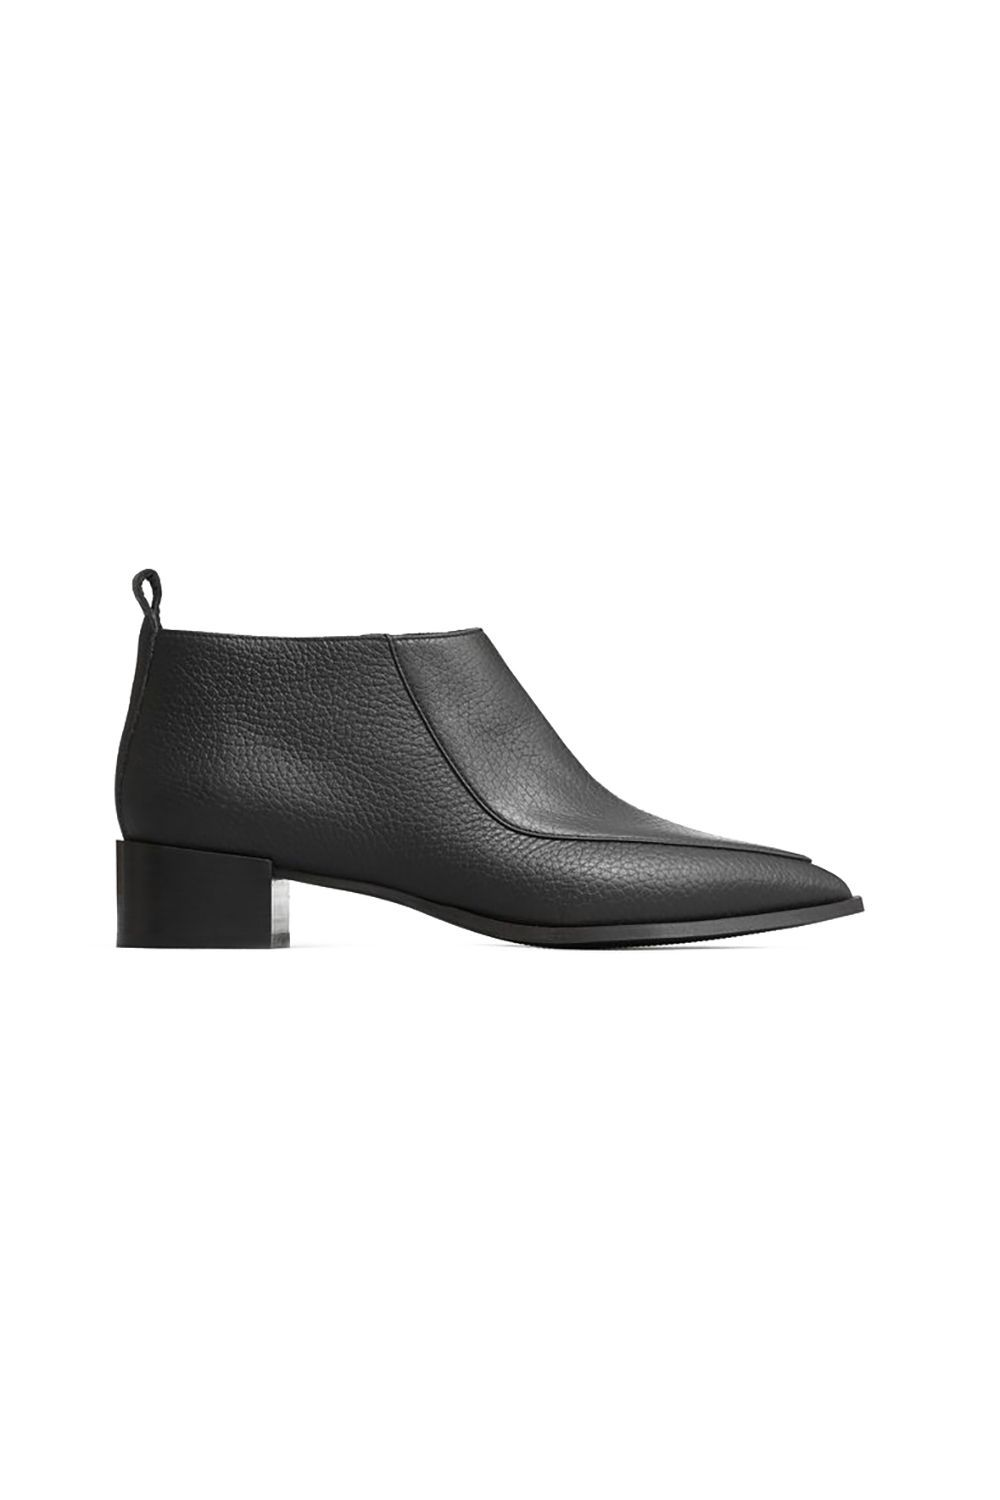 Black Ankle Boots Everlane everlane.com $215.00 SHOP IT This loafer-meets-boot creation is the ultimate office-appropriate shoe. It stops right at the ankles and the closed-toe design is sleek and unique with a badass kind of feel.